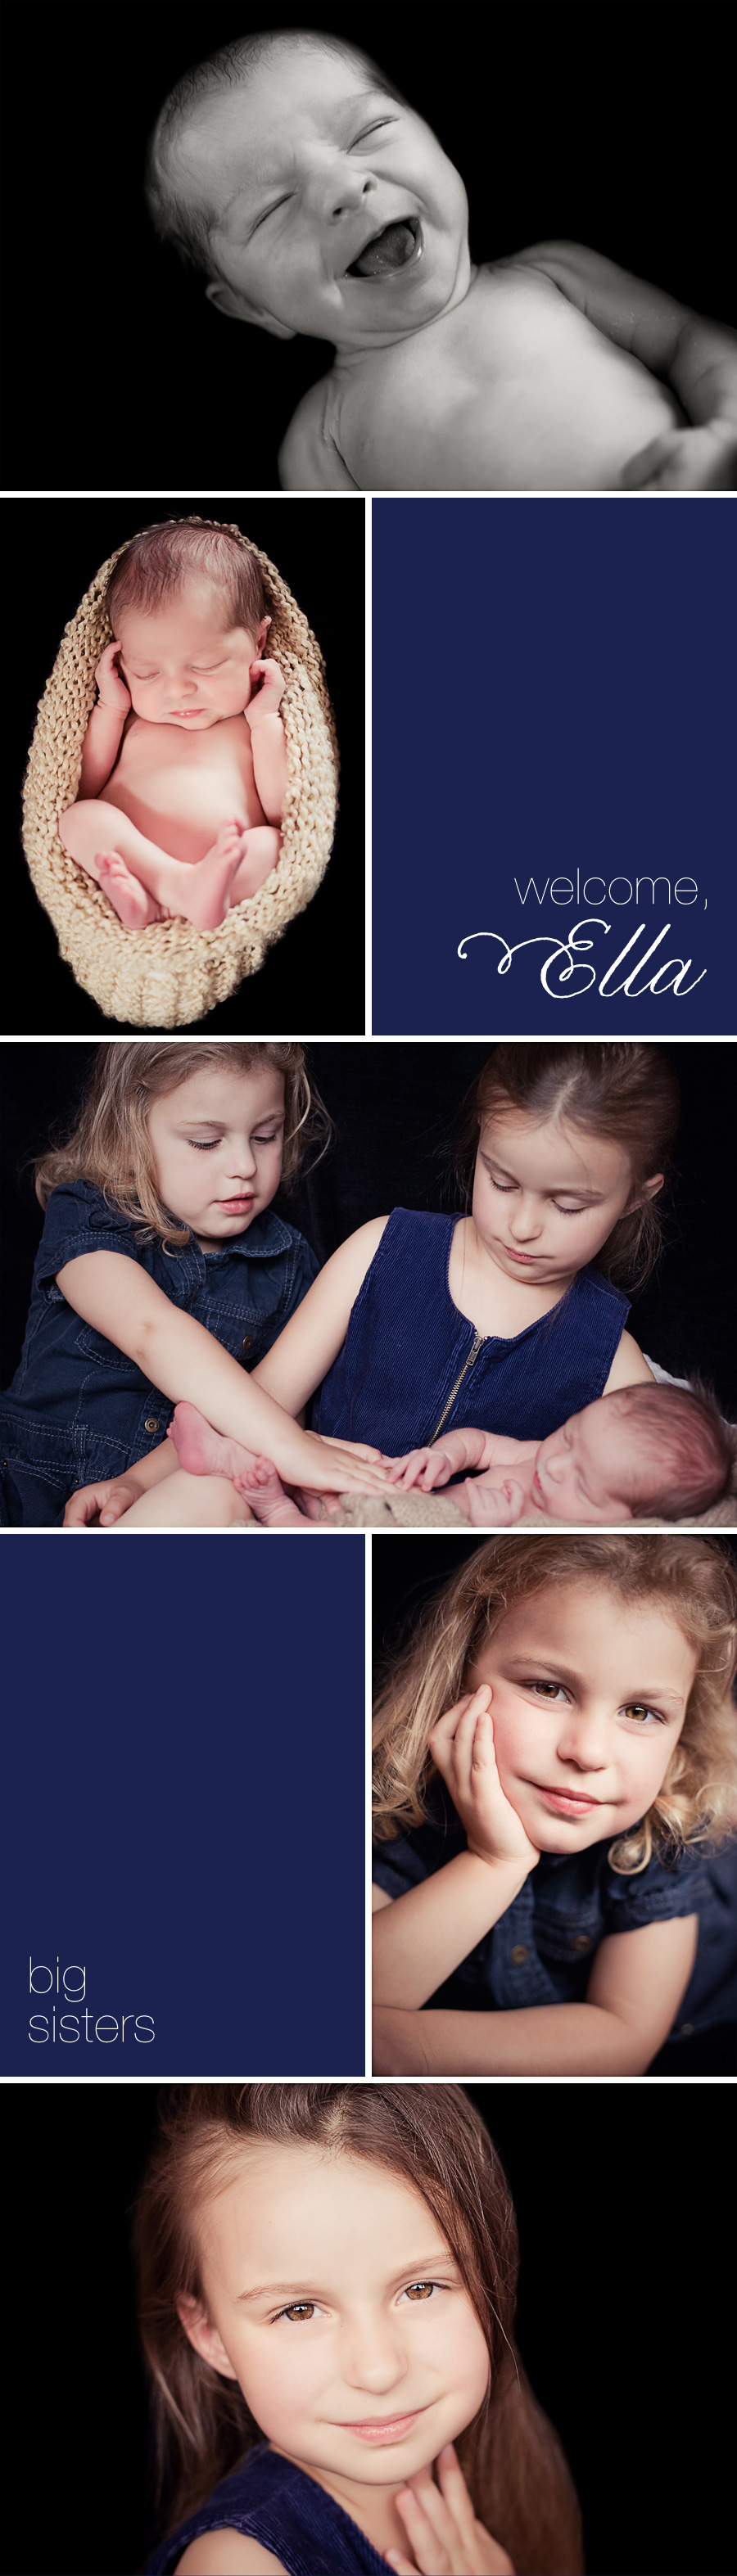 portrait session with an infant and her older sisters - photos by newborn and children's photographer Gillian Crane